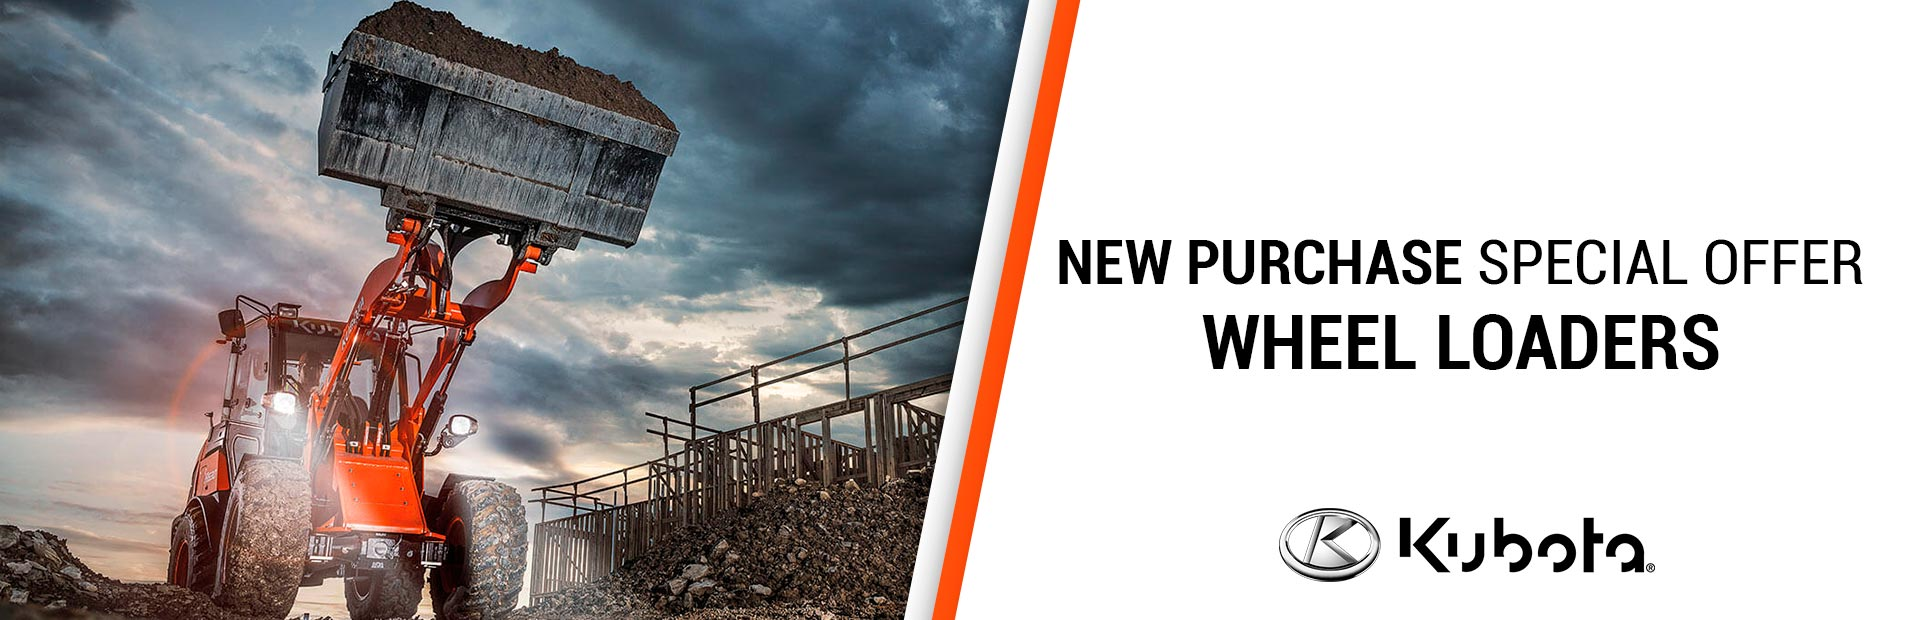 Kubota: NEW PURCHASE SPECIAL OFFERS-KUBOTA WHEEL LOADERS